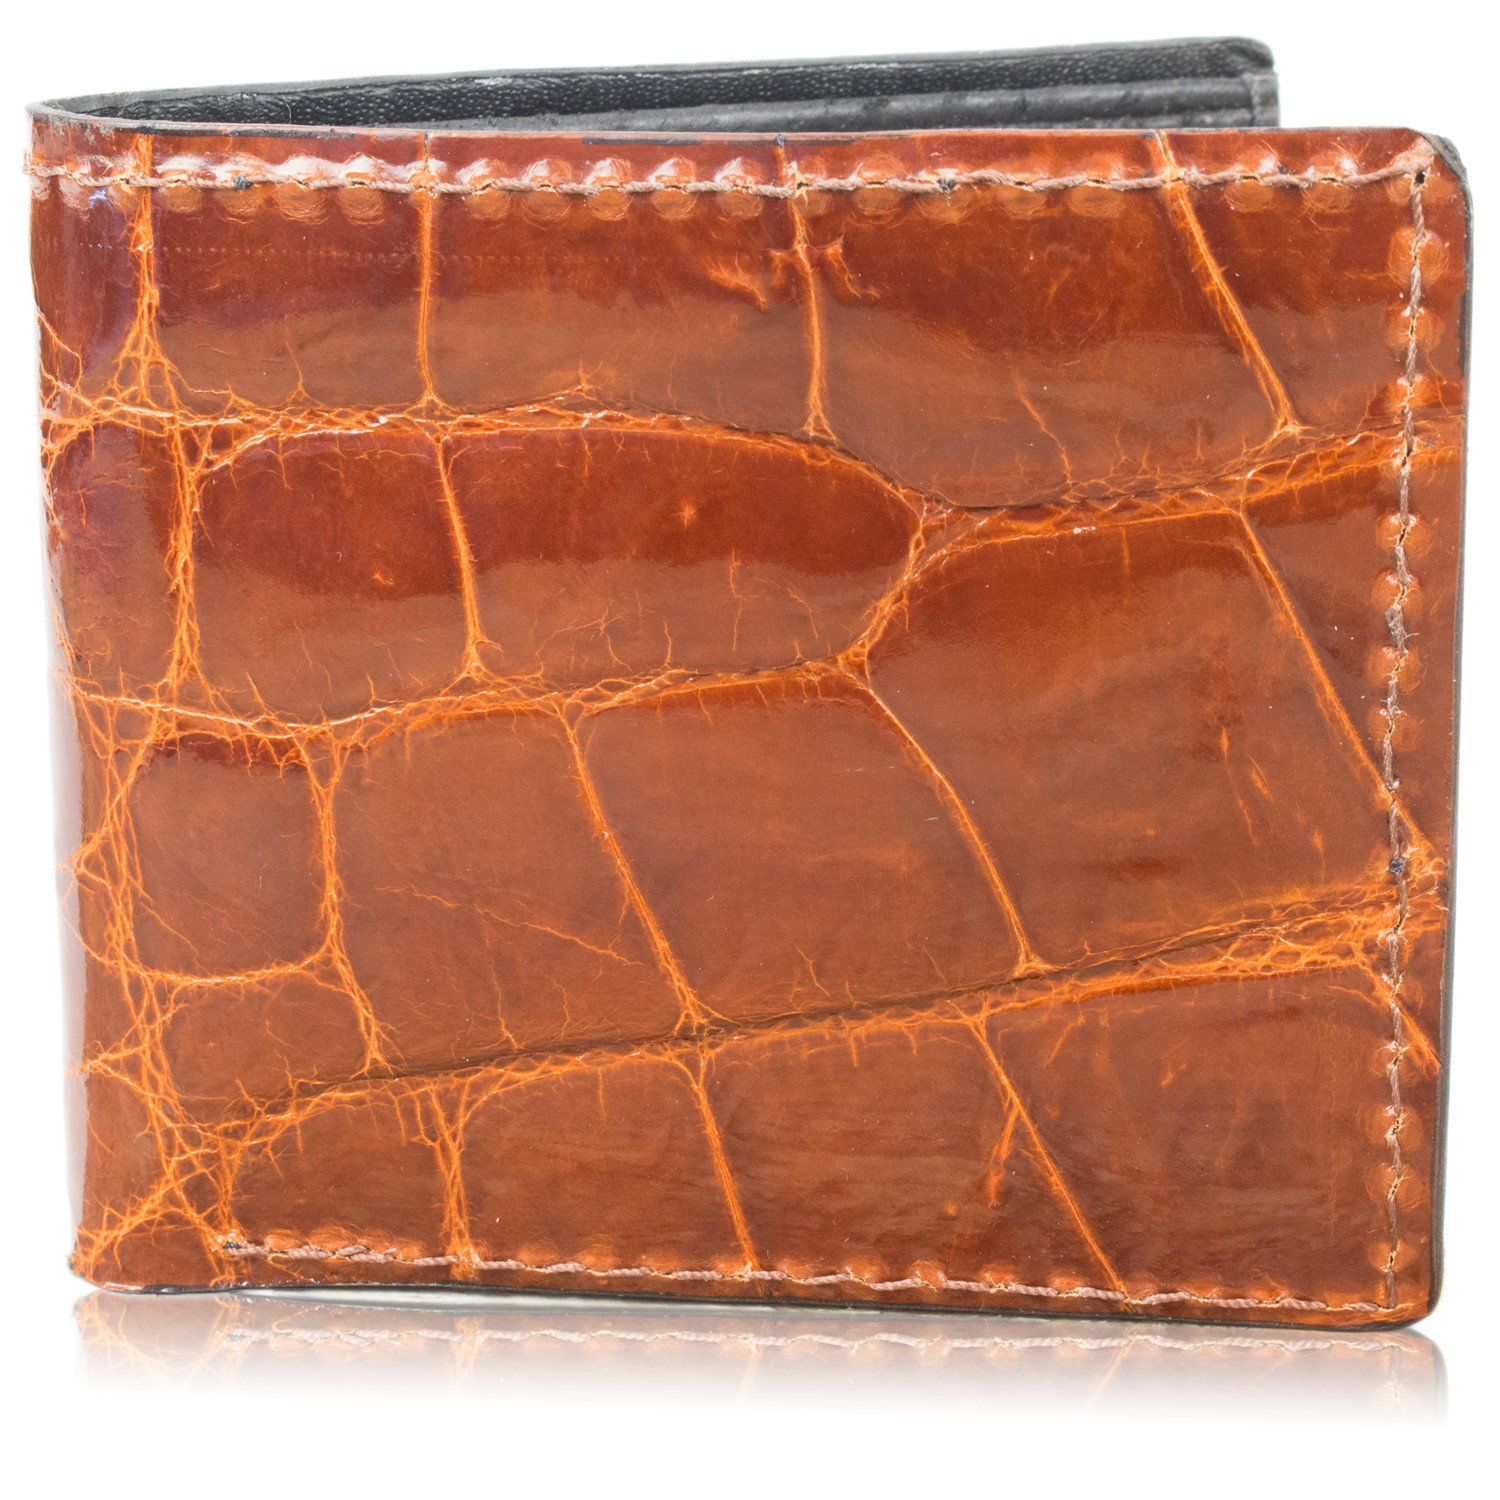 Genuine Alligator Skin Leather Bifold Wallet Handmade (8 Card Slots, Cognac)